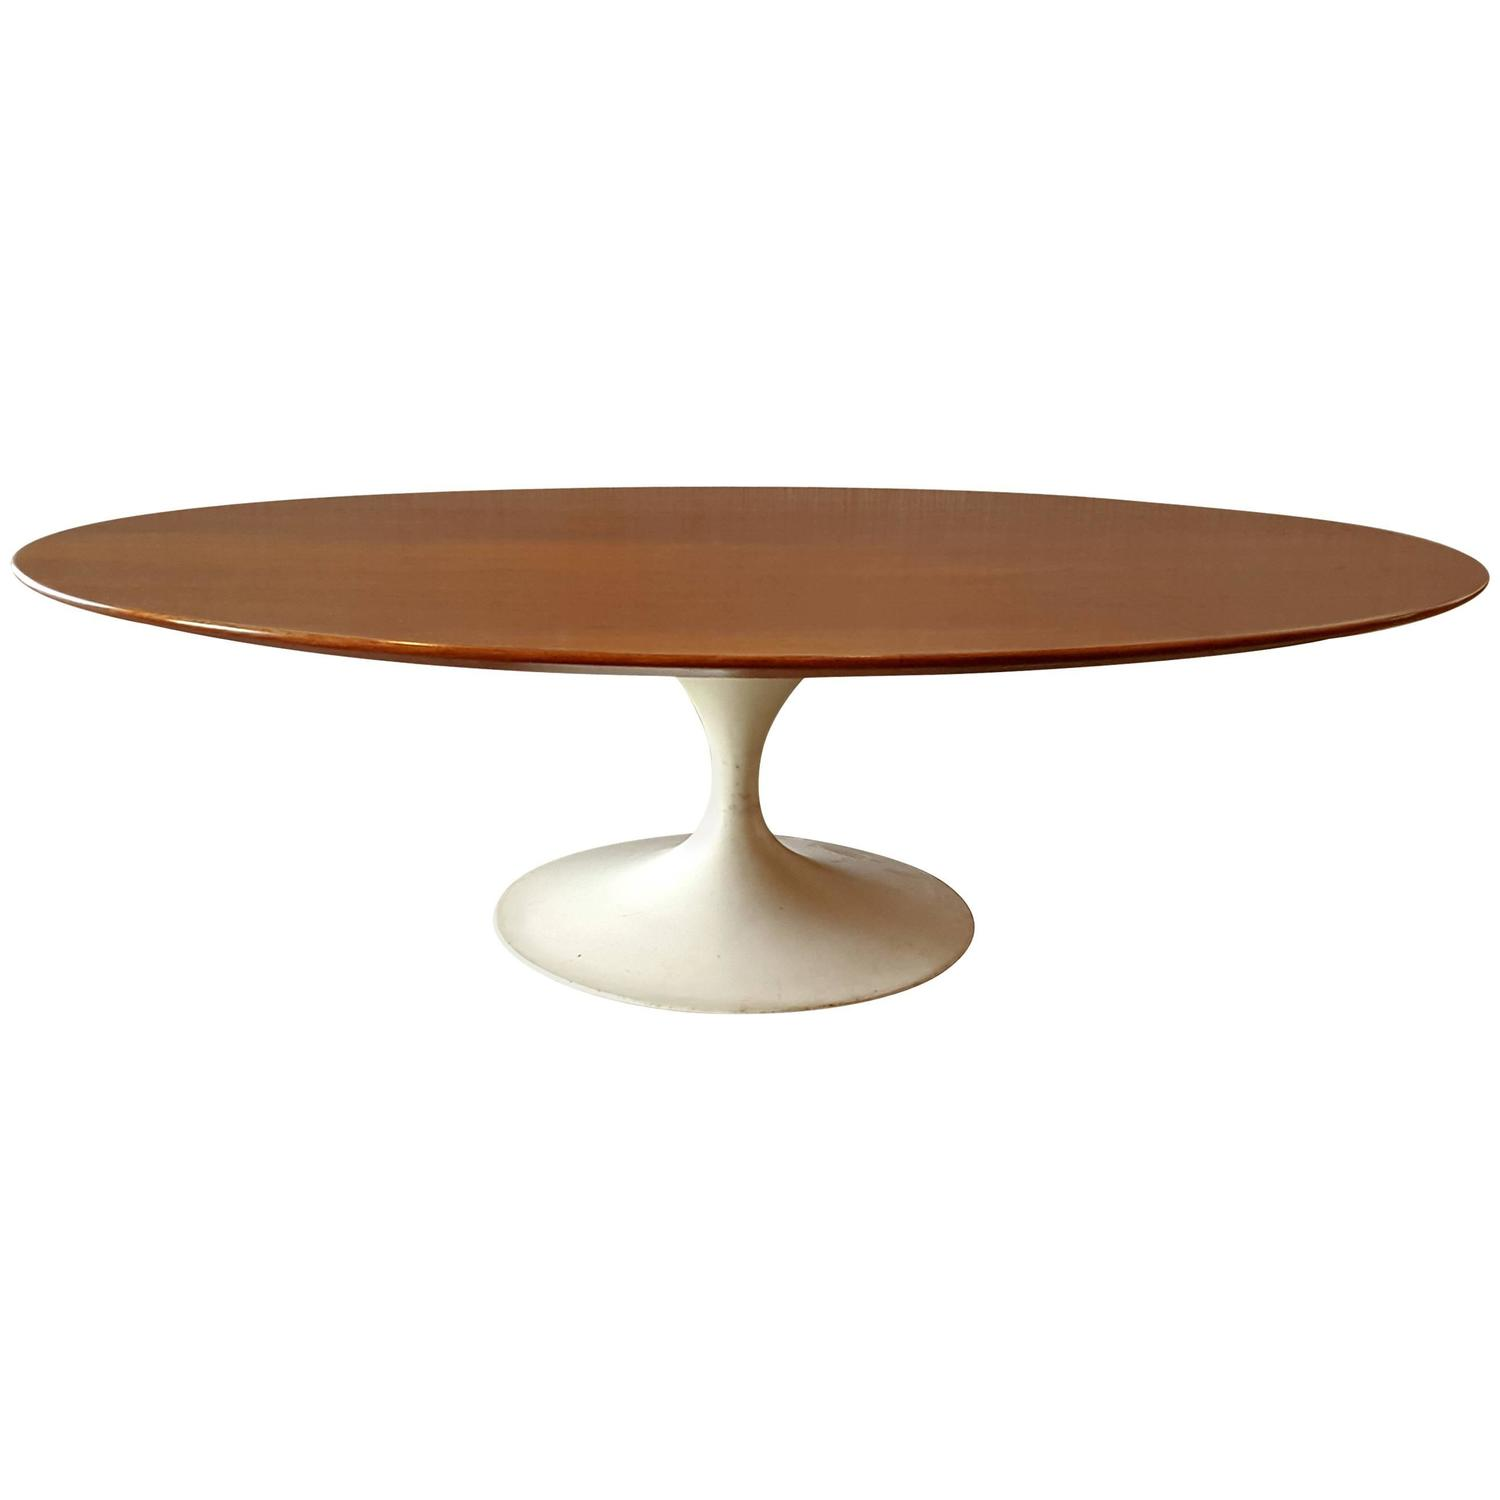 Early Oval Eero Saarinen Coffee Table For Knoll For Sale At 1stdibs